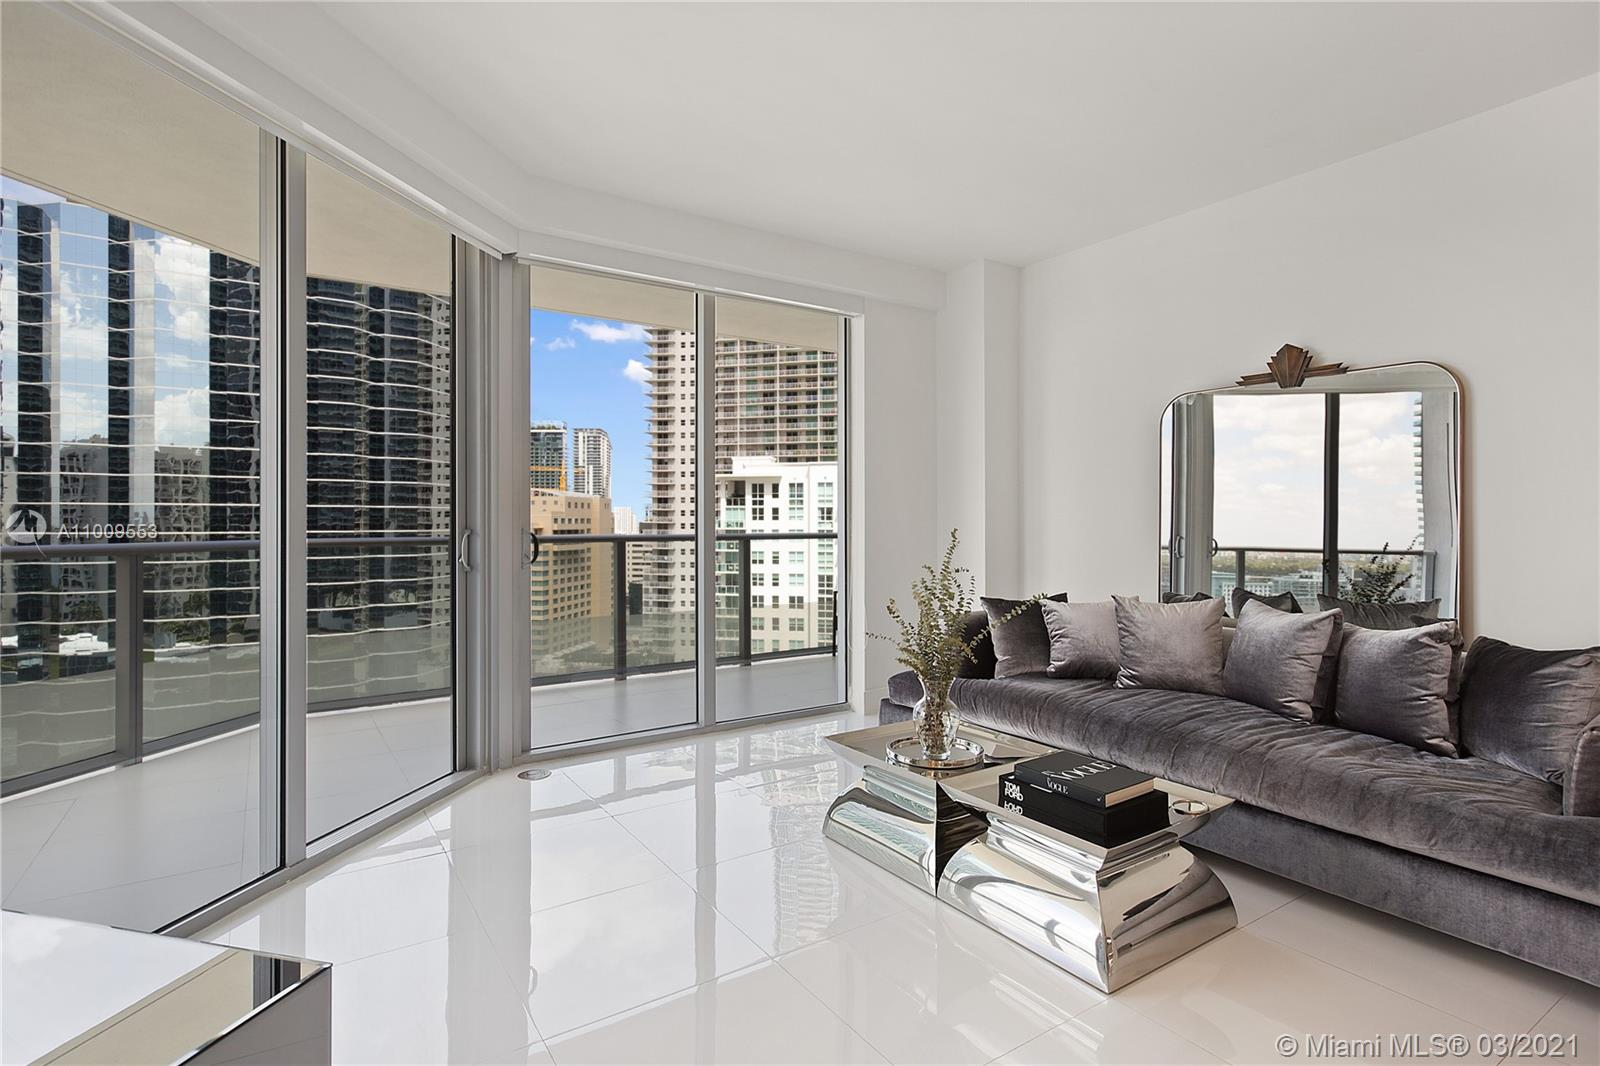 STUNNING TURNKEY 22ND FLOOR 2 BED/2 BATH CORNER CONDO AT THE FIVE STAR AMENITY BRICKELLHOUSE.  THIS GORGEOUS CONDO WITH FOREVER SUNSET AND BALCONY WATER VIEWS HAS BEEN METICULOUSLY FURNISHED AND UPDATED WITH DESIGNER CUSTOM FURNITURE, OTHER HIGH END DECOR WITH NO DETAIL OVERLOOKED.  EXTRAS INCLUDE BUT NOT LIMITED TO MULTIPLE RECESSED LIGHTING, CUSTOM BACKSPLASH, UPGRADED W/D, CUSTOM CLOSET, NEW KICKPLATES, DECORATOR PAINT.   BRICKELLHOUSE OFFERS ROOFTOP DECK AND POOL, GYM, FITNESS SPA, CONCIERGE SERVICE, LAP POOL, POOLSIDE CABANAS, SAUNA, STEAM ROOM.  SEPARATE BUILING GARAGE PARKING.  COMPLETELY READY TO MOVE IN INCLUDING FURNITURE, DISHES, LINENS!